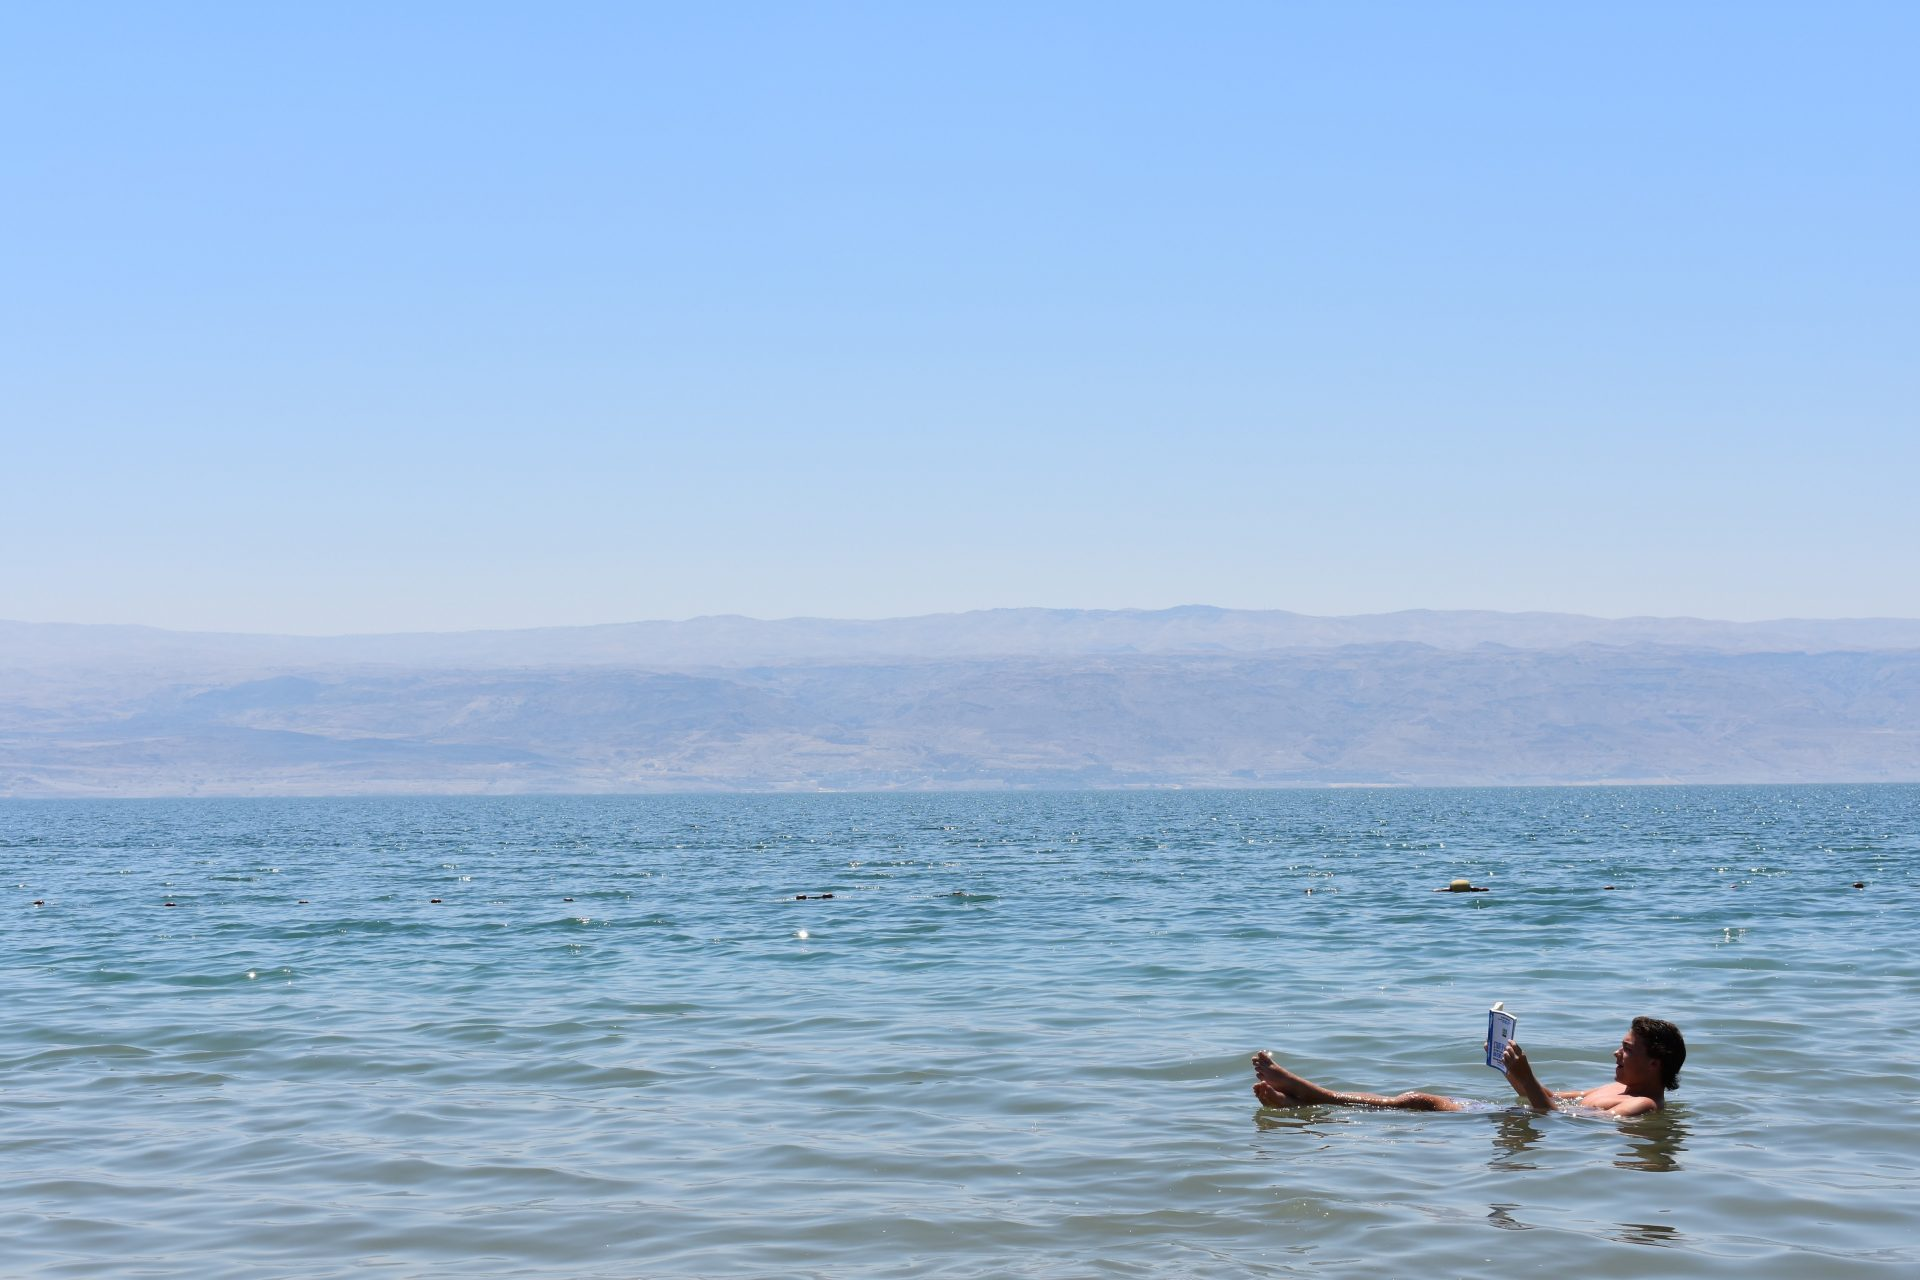 Floating in the nearby Dead Sea